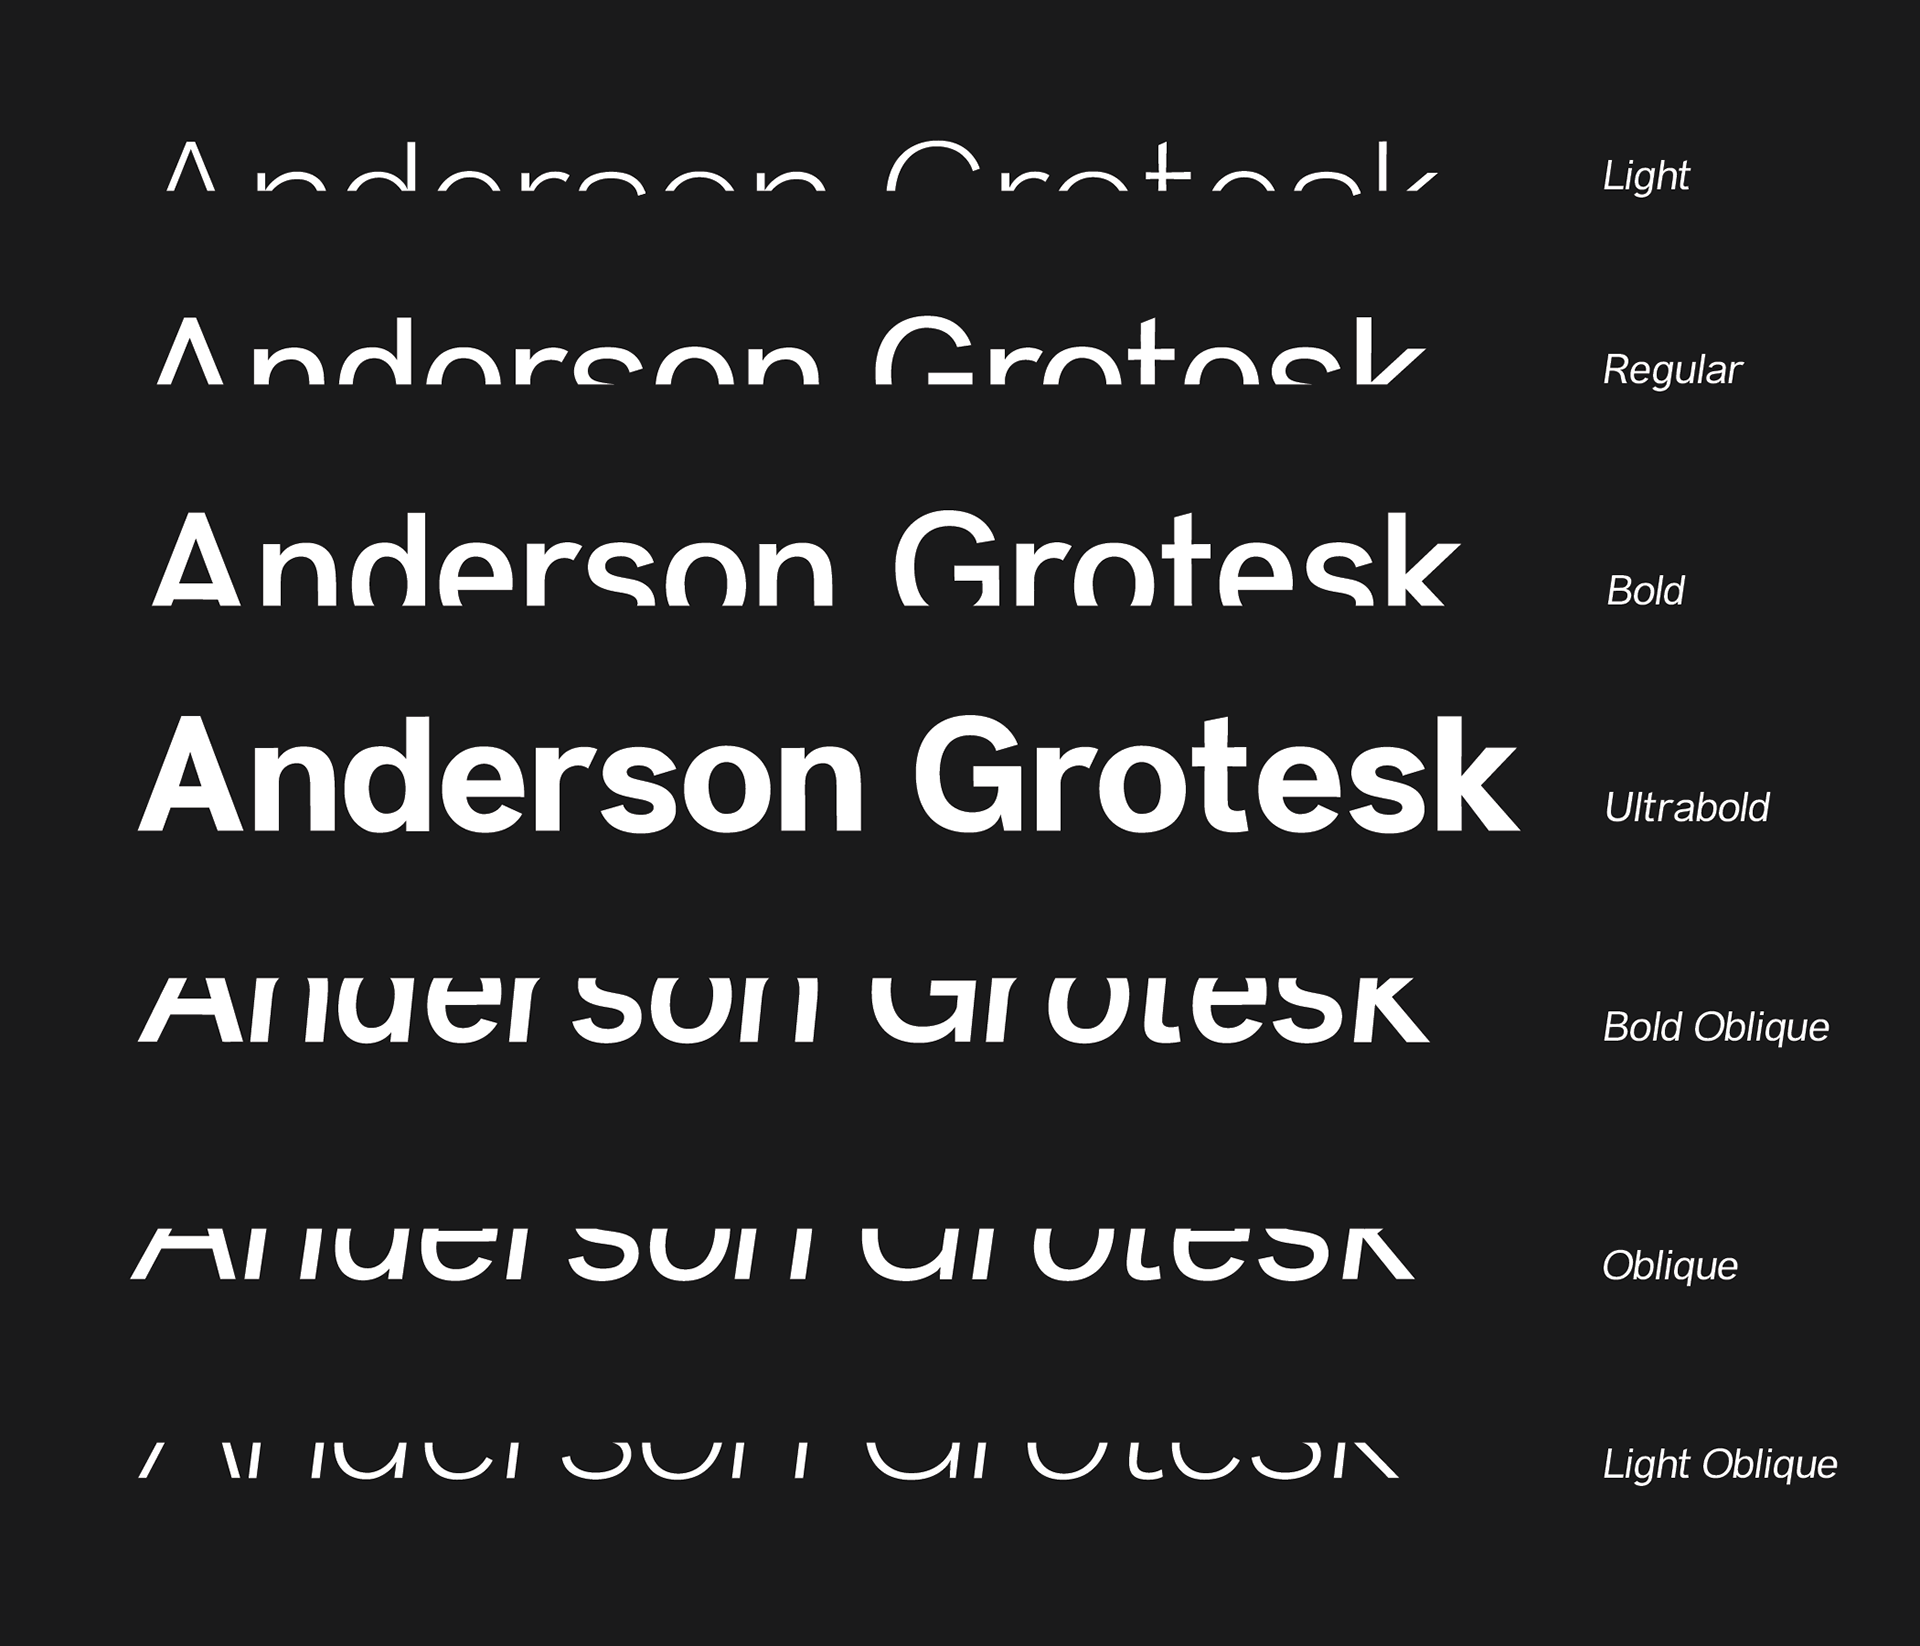 Anderson Grotesk | A free font family  on Behance